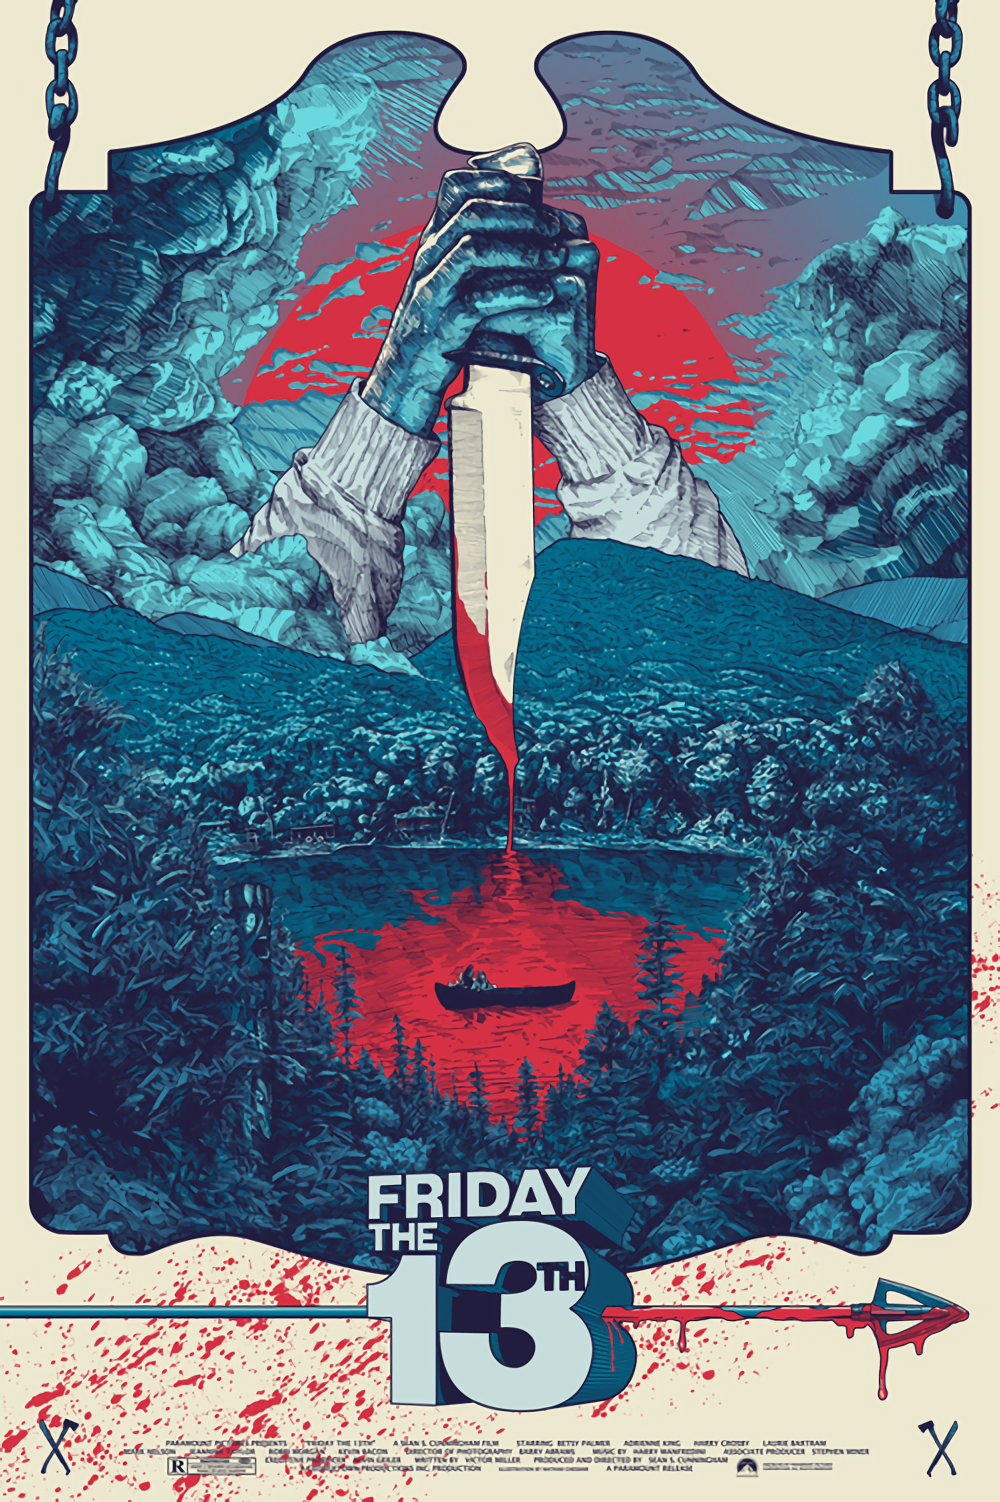 Friday The 13th 1980 Hd Wallpaper From Gallsource Com Horror